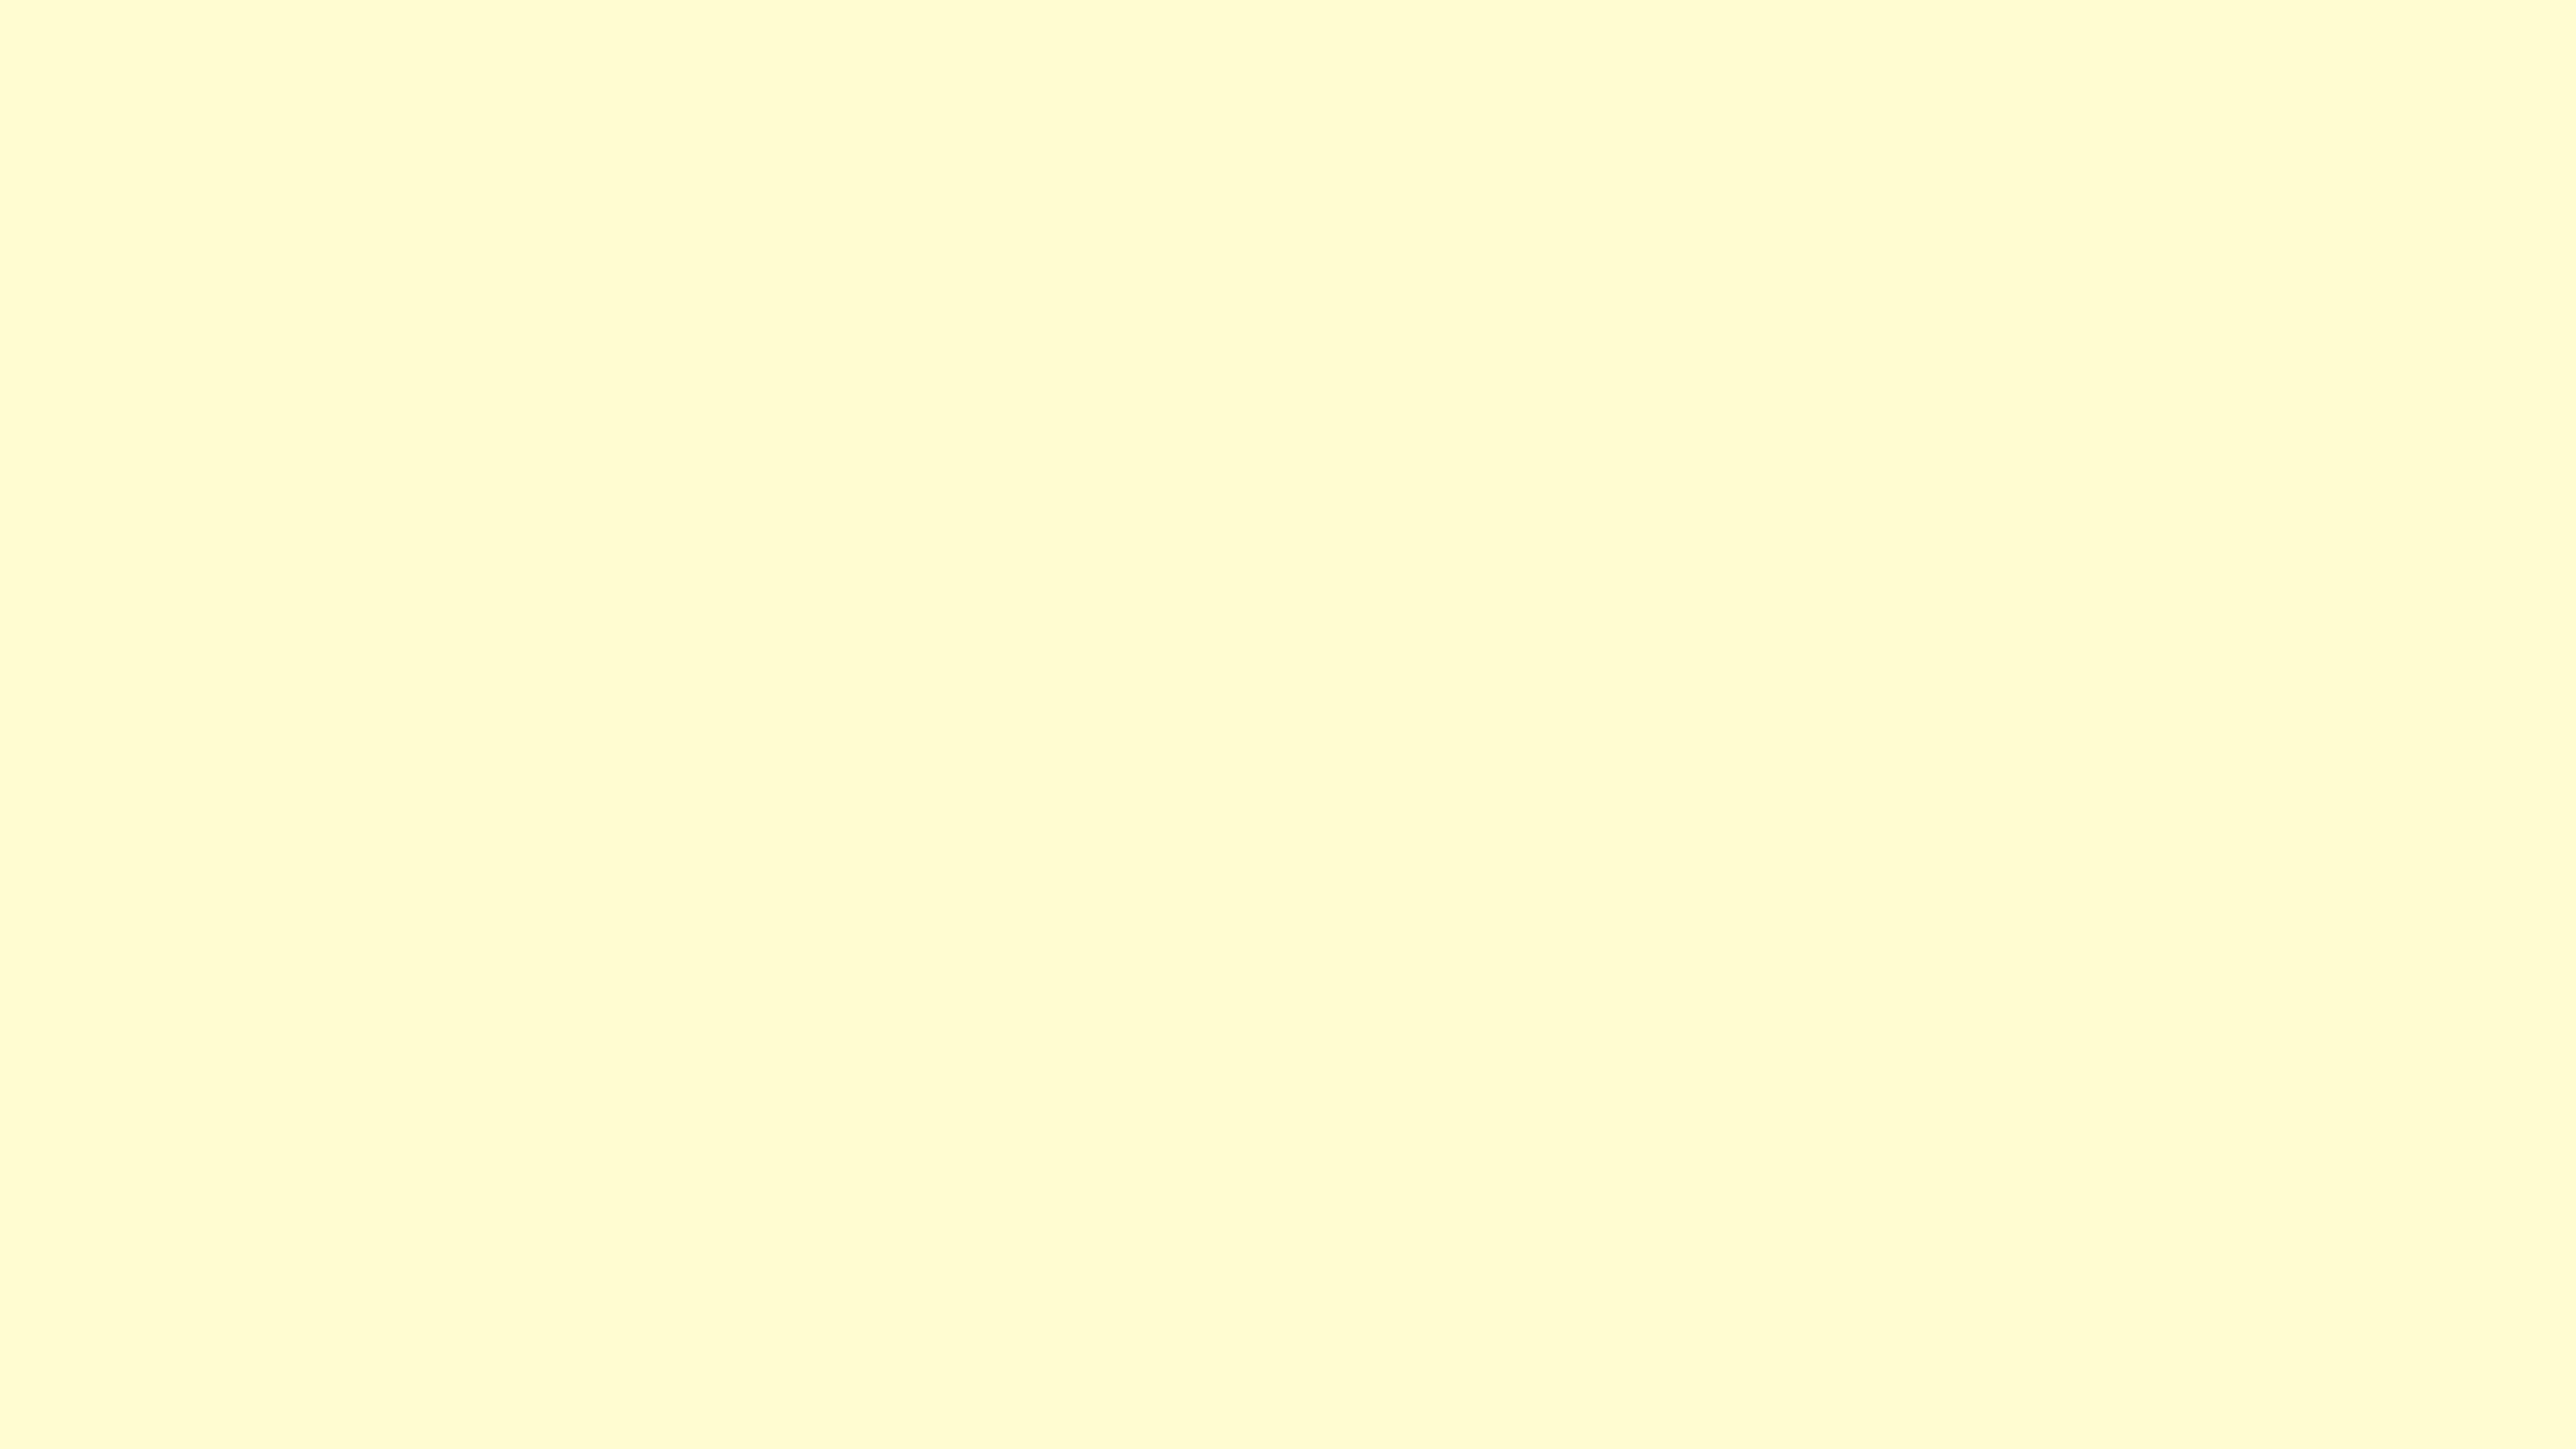 3840x2160 Cream Solid Color Background